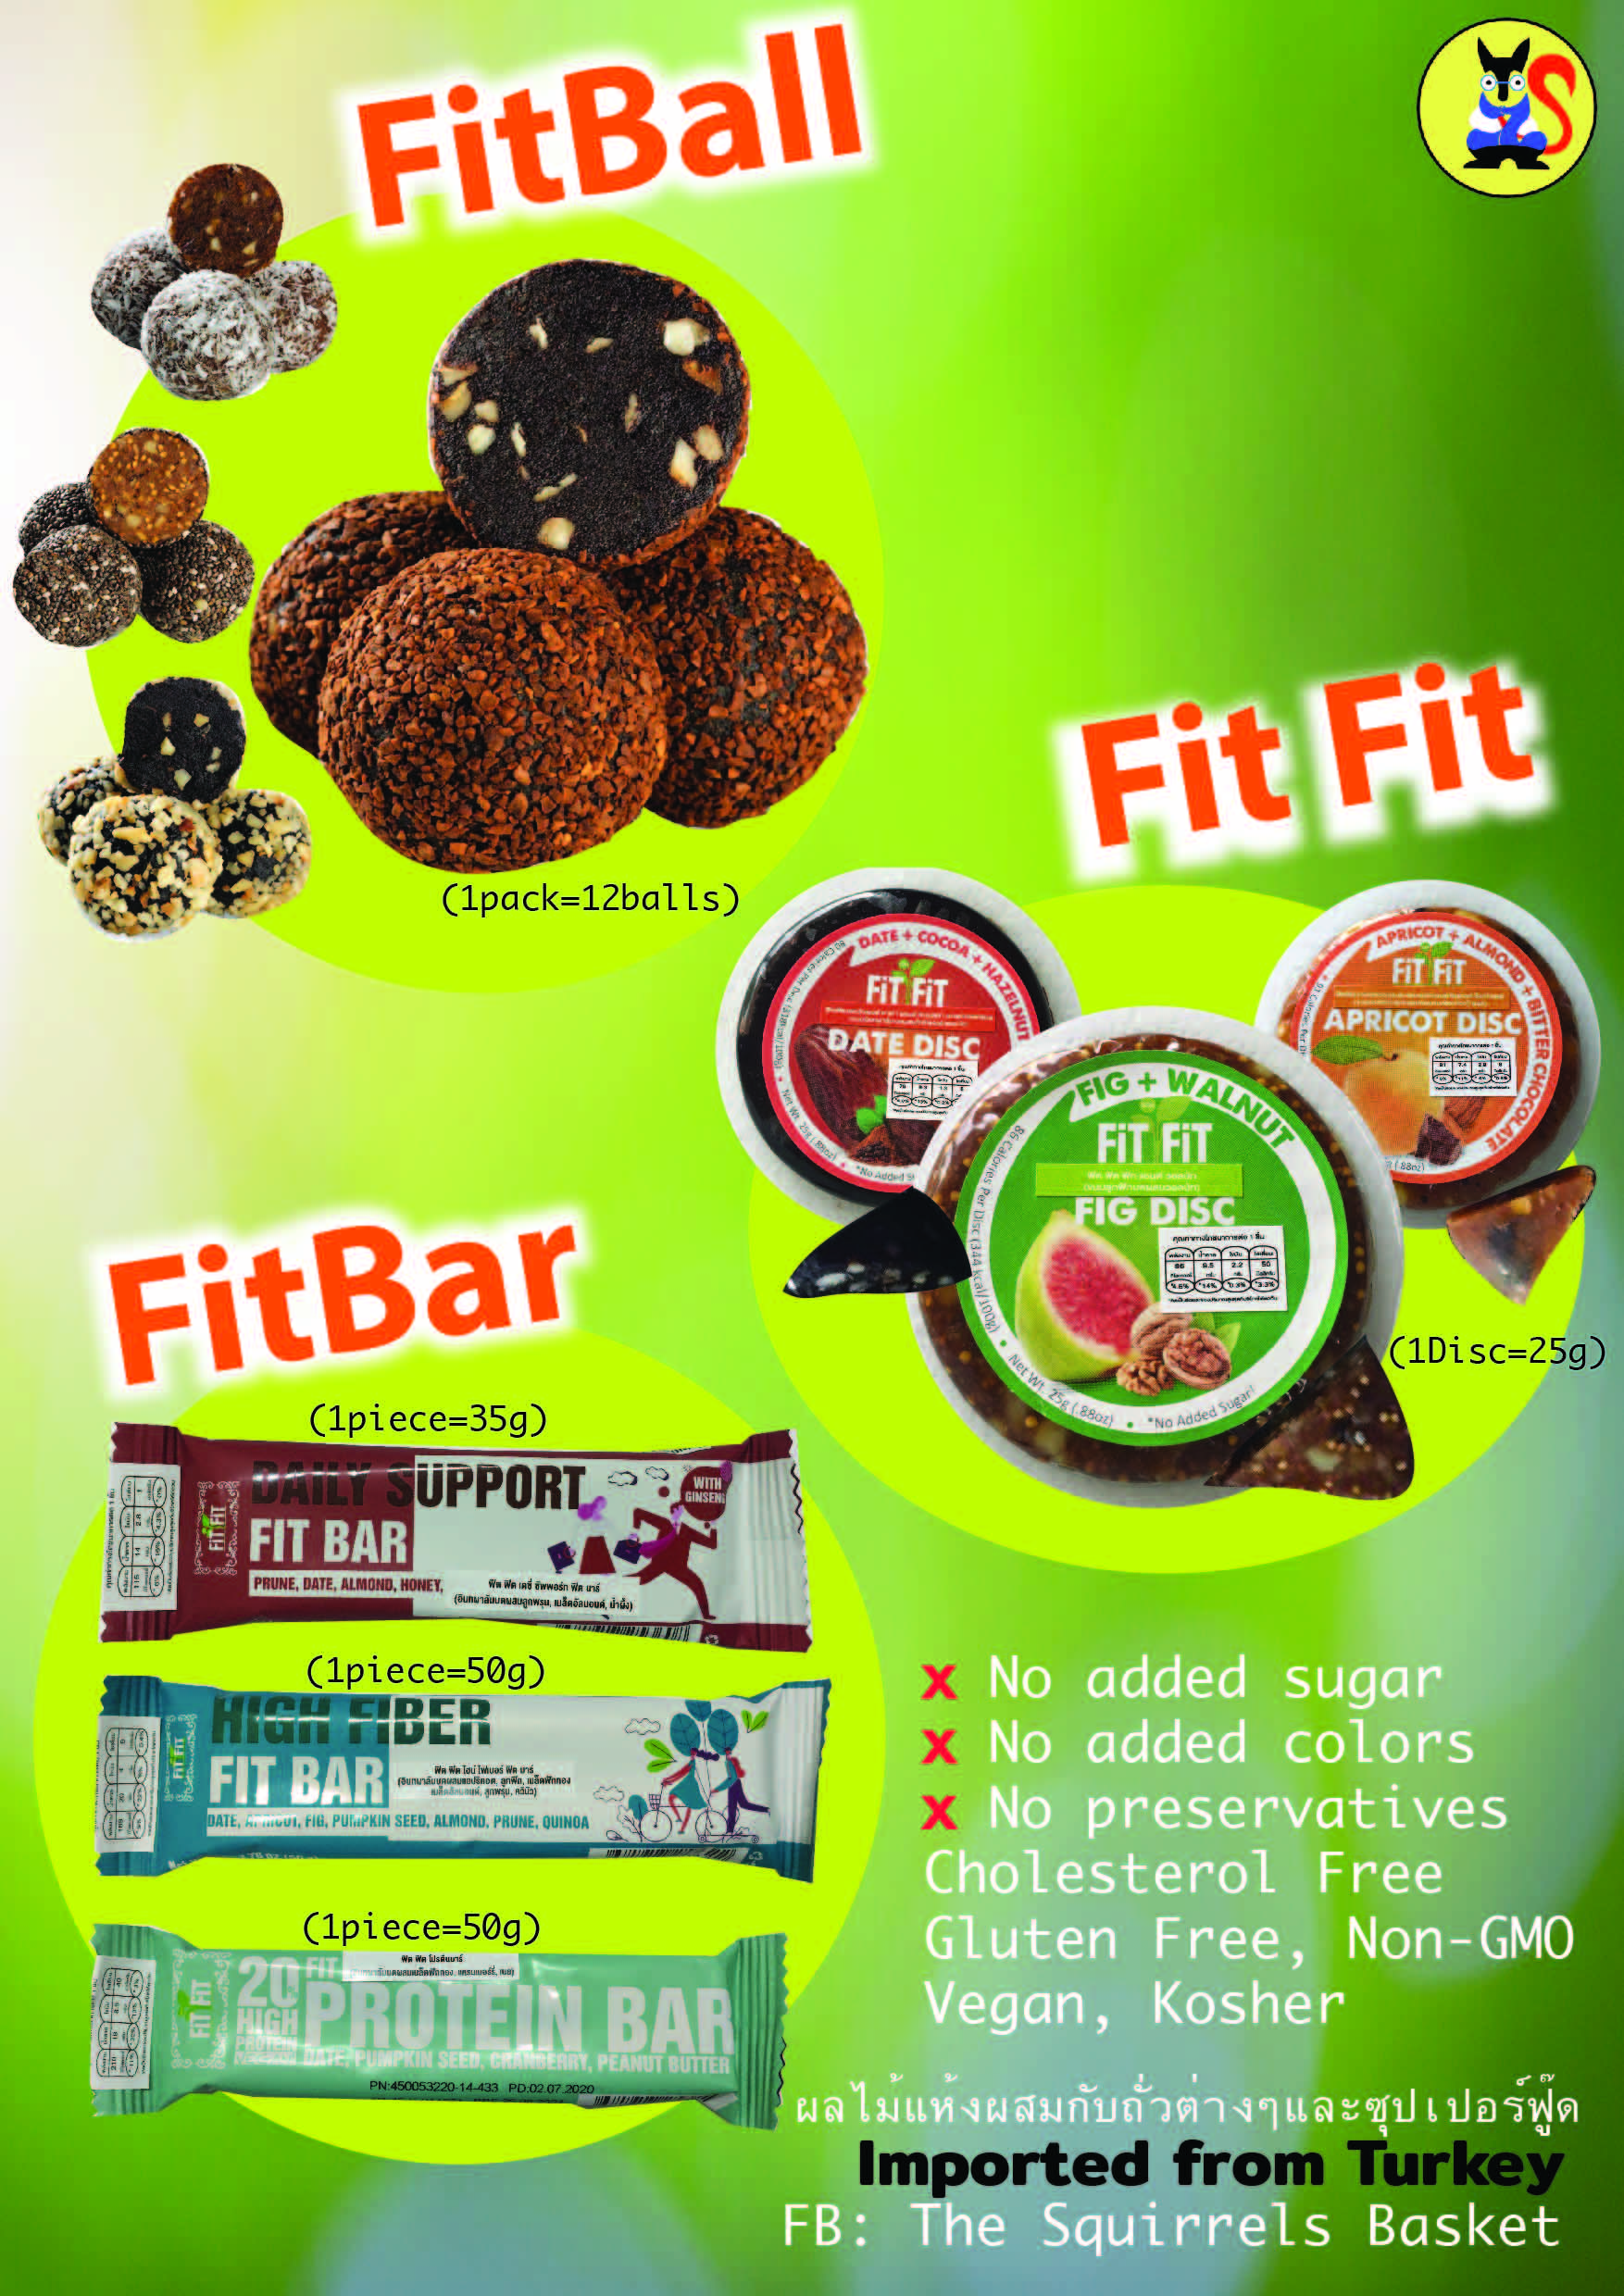 Fit Fit, Fit Bar, Fit Ball